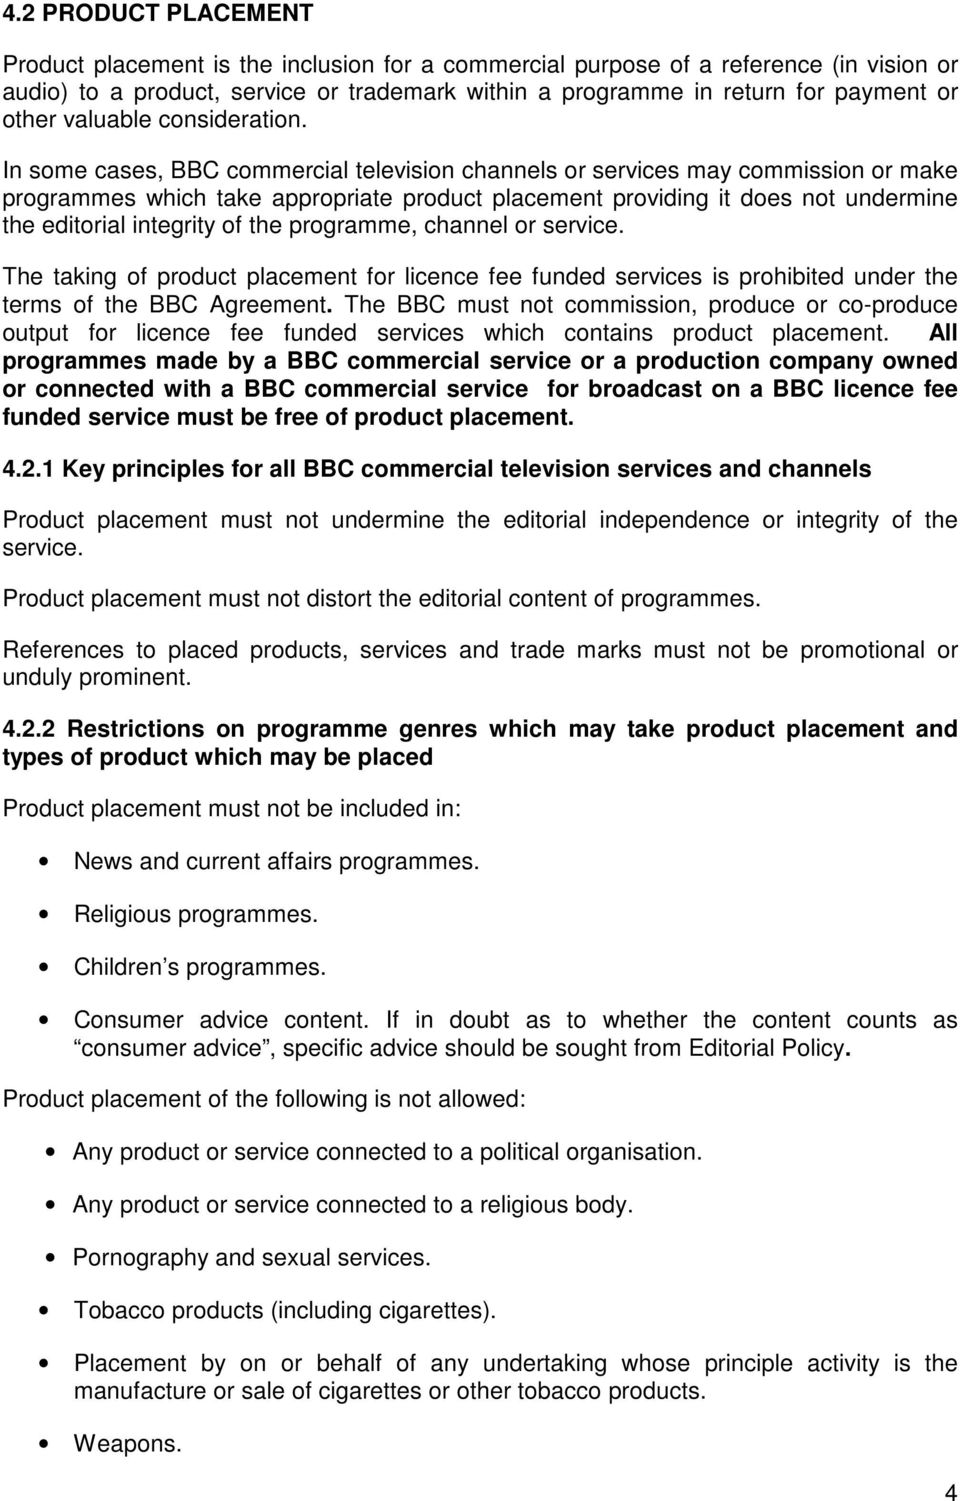 In some cases, BBC commercial television channels or services may commission or make programmes which take appropriate product placement providing it does not undermine the editorial integrity of the